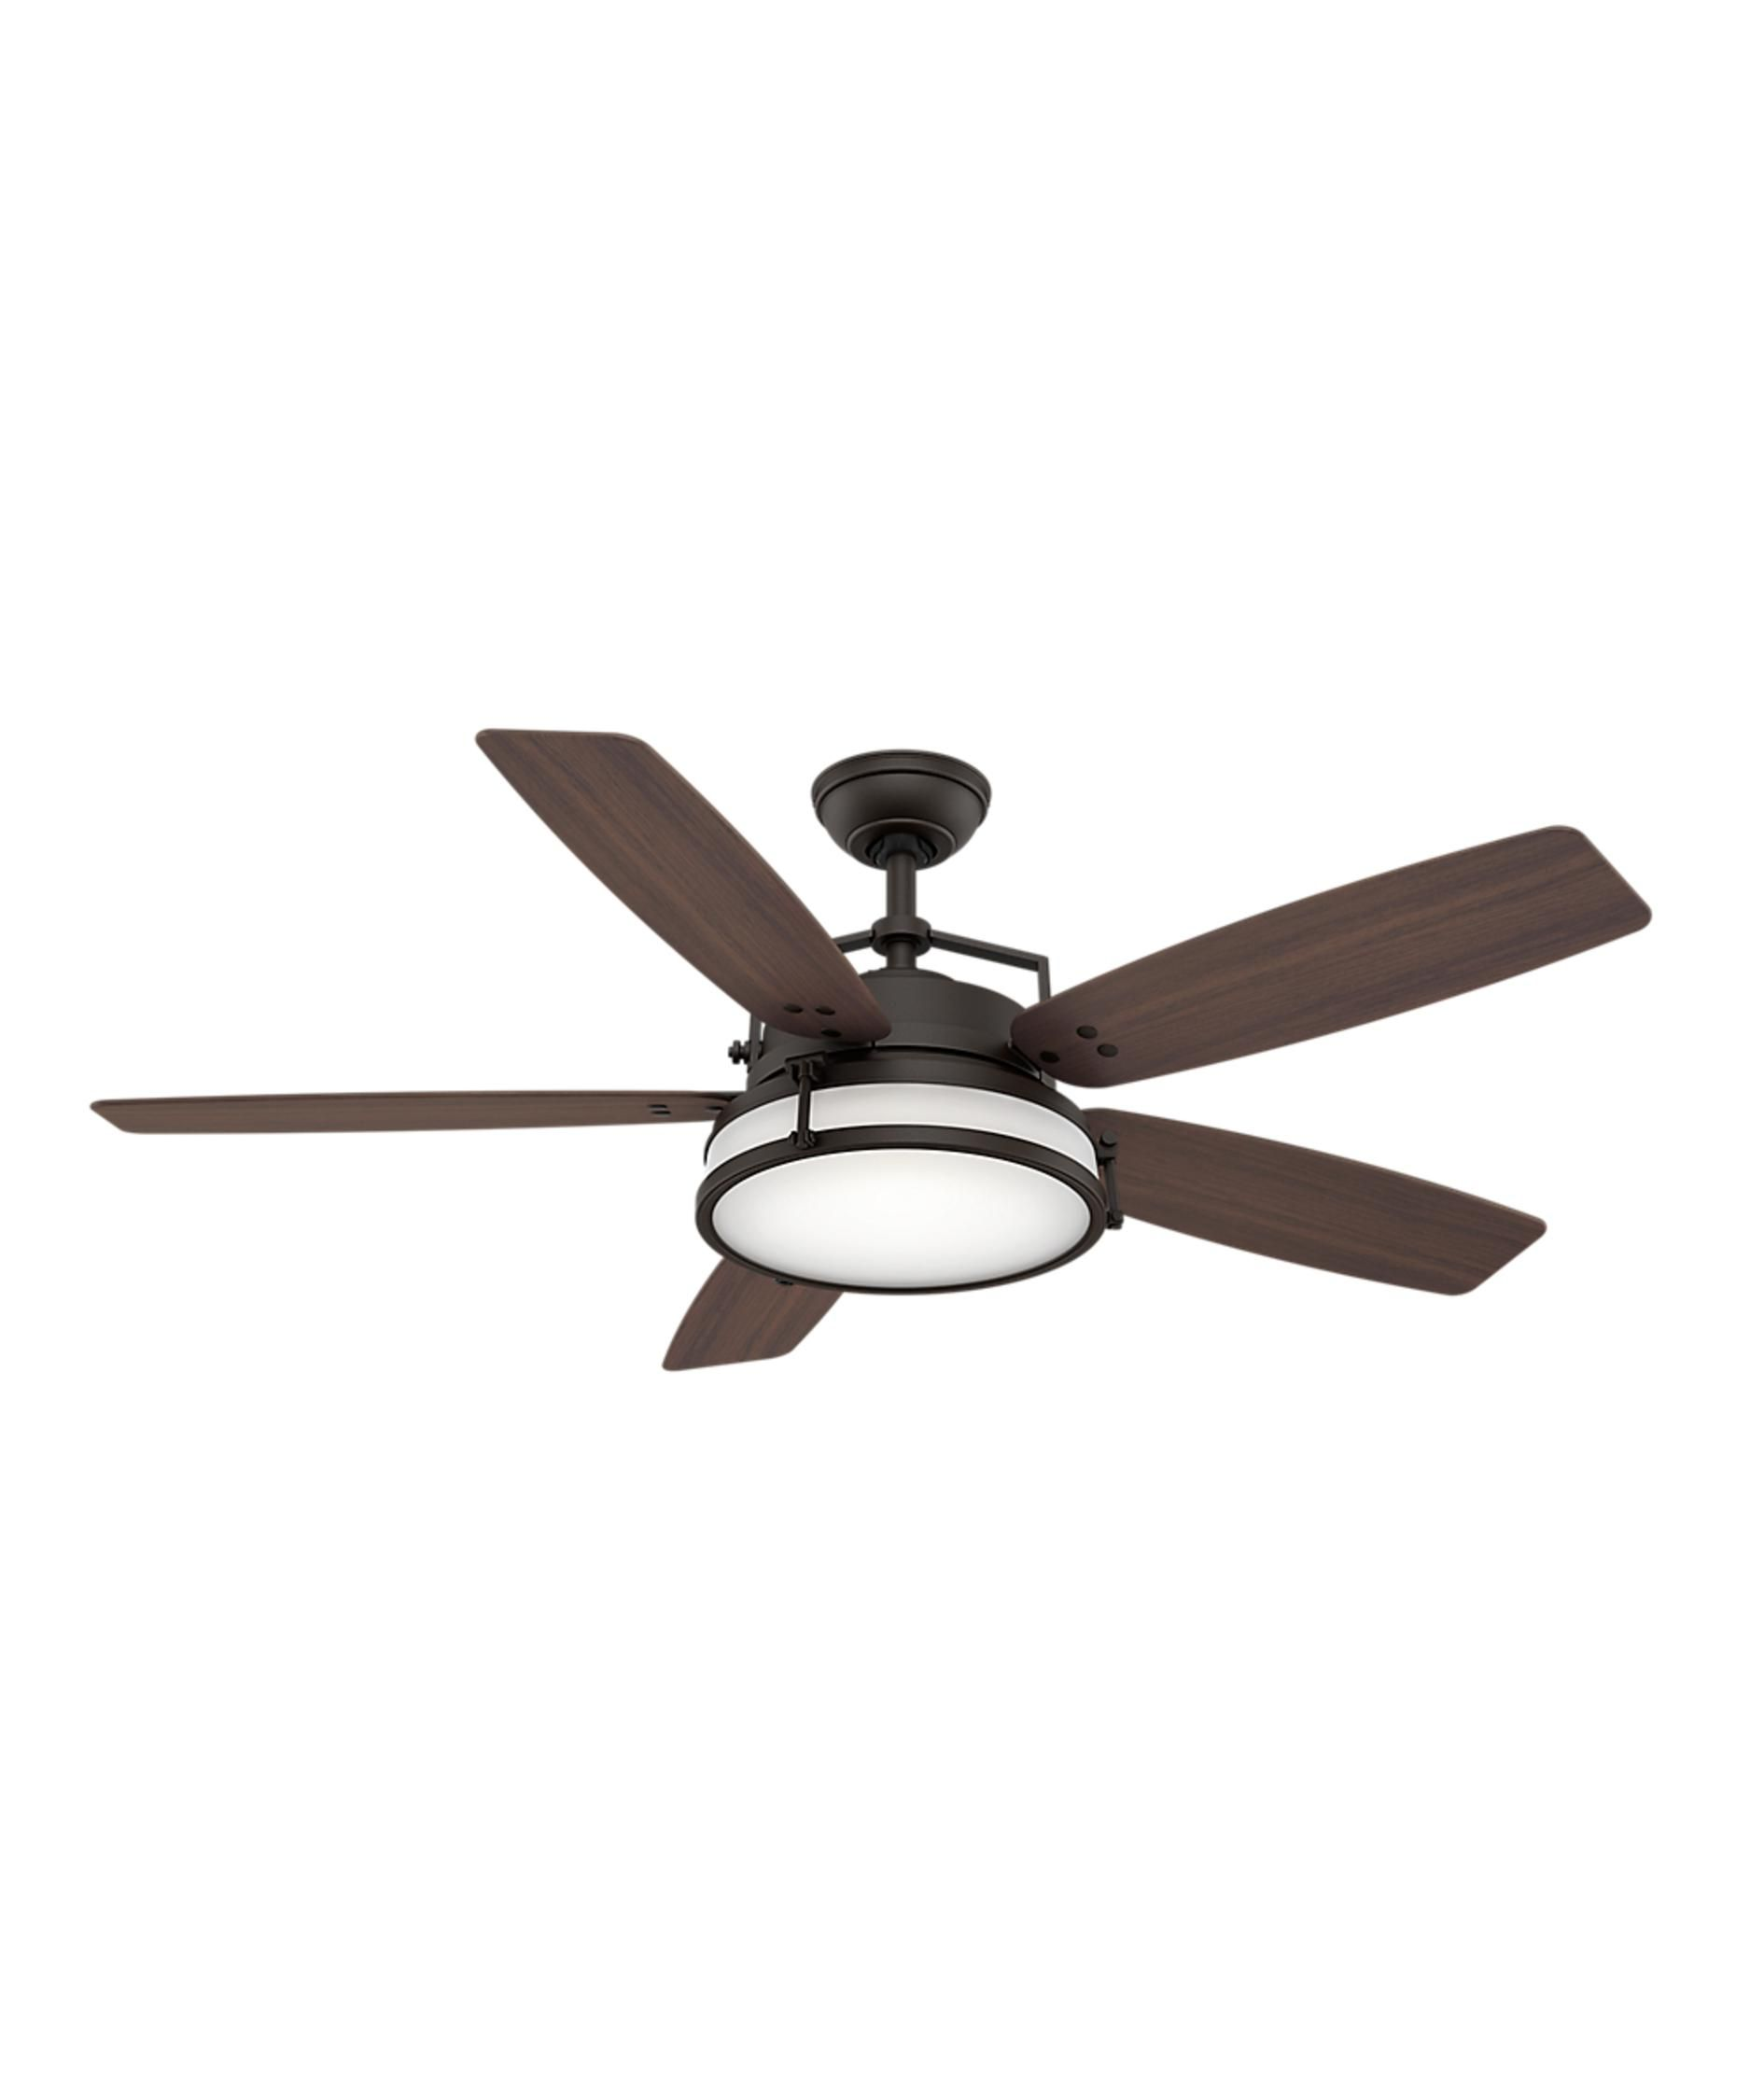 fans and versions stealth dc modern iteration latest greatest today inch setting the an ceiling ceilings with of being motor are bestfans this a there several fan best available